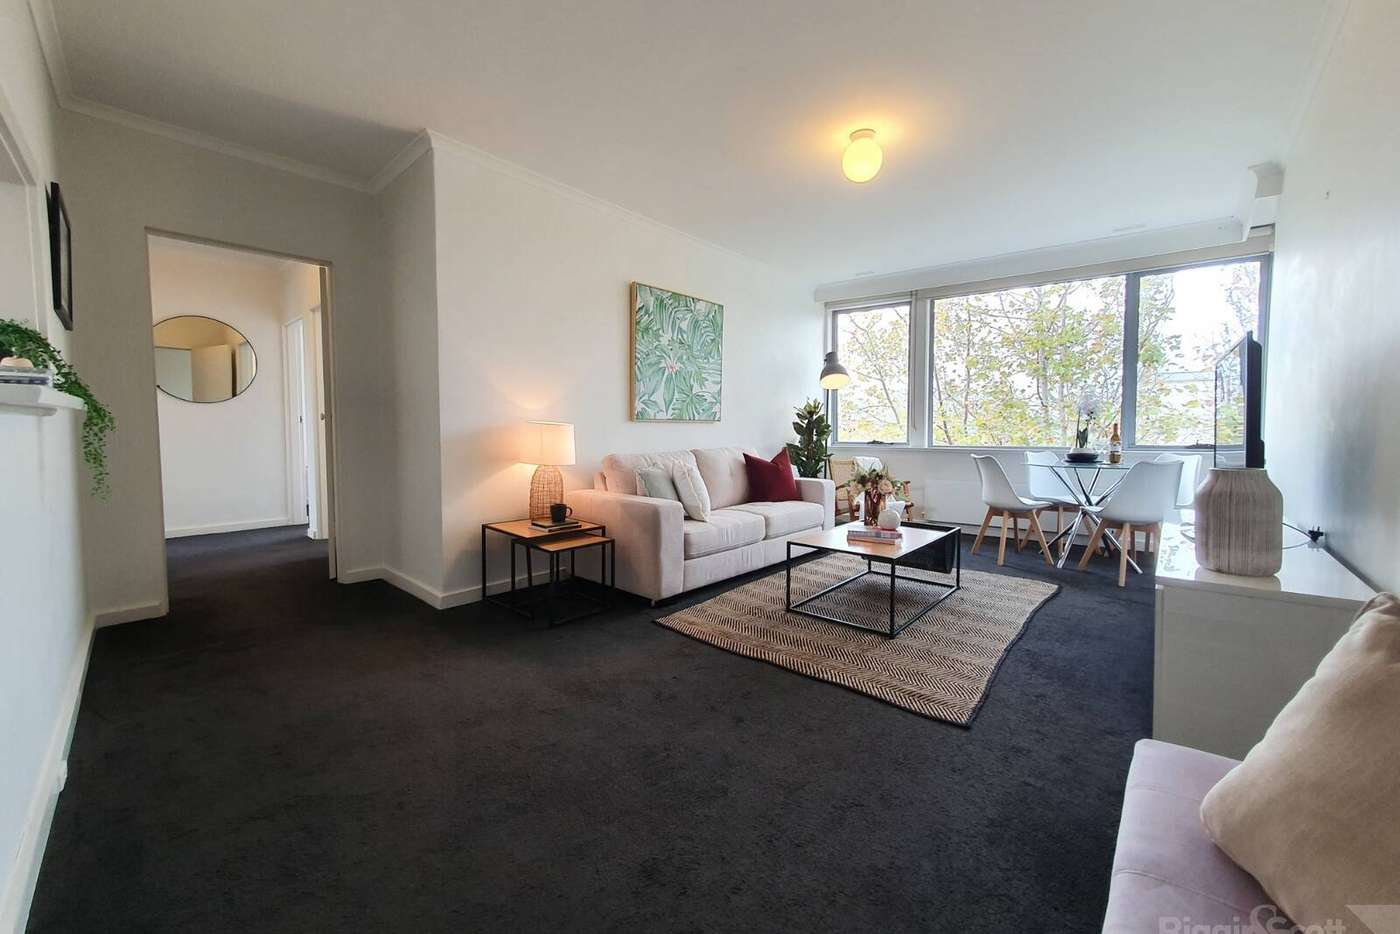 Main view of Homely apartment listing, 21/2A Robe Street, St Kilda VIC 3182